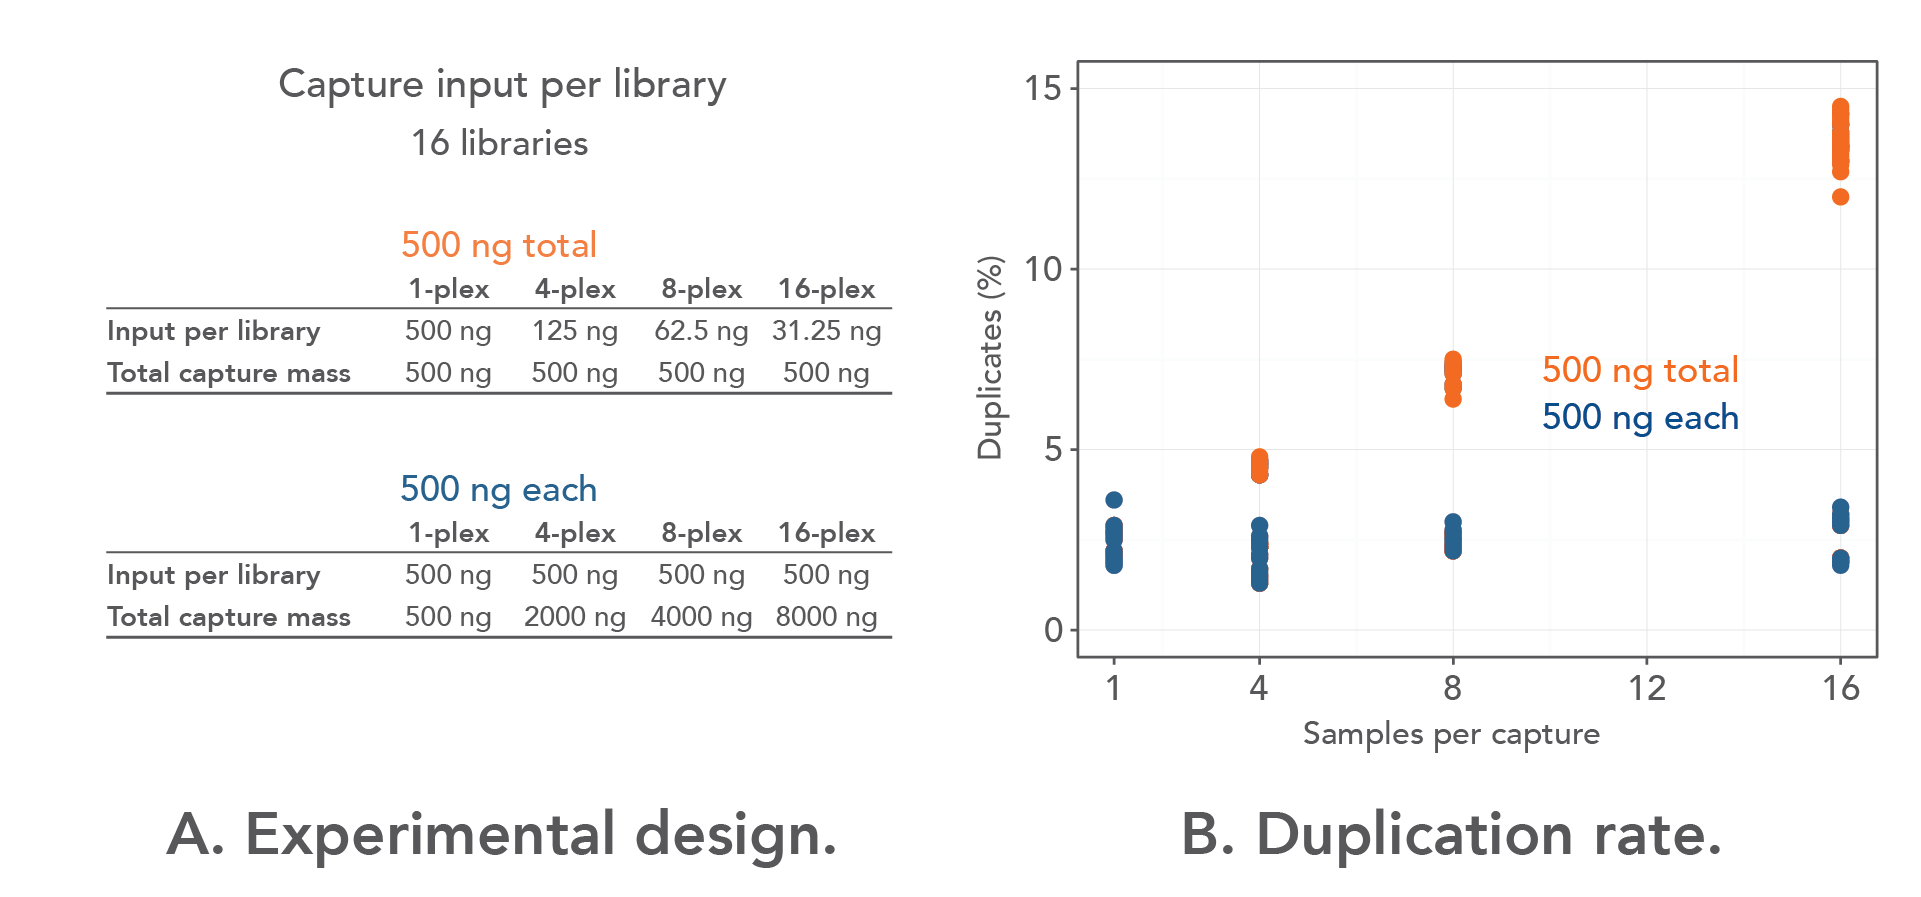 Stable duplication rate with 500 ng of each library in pool